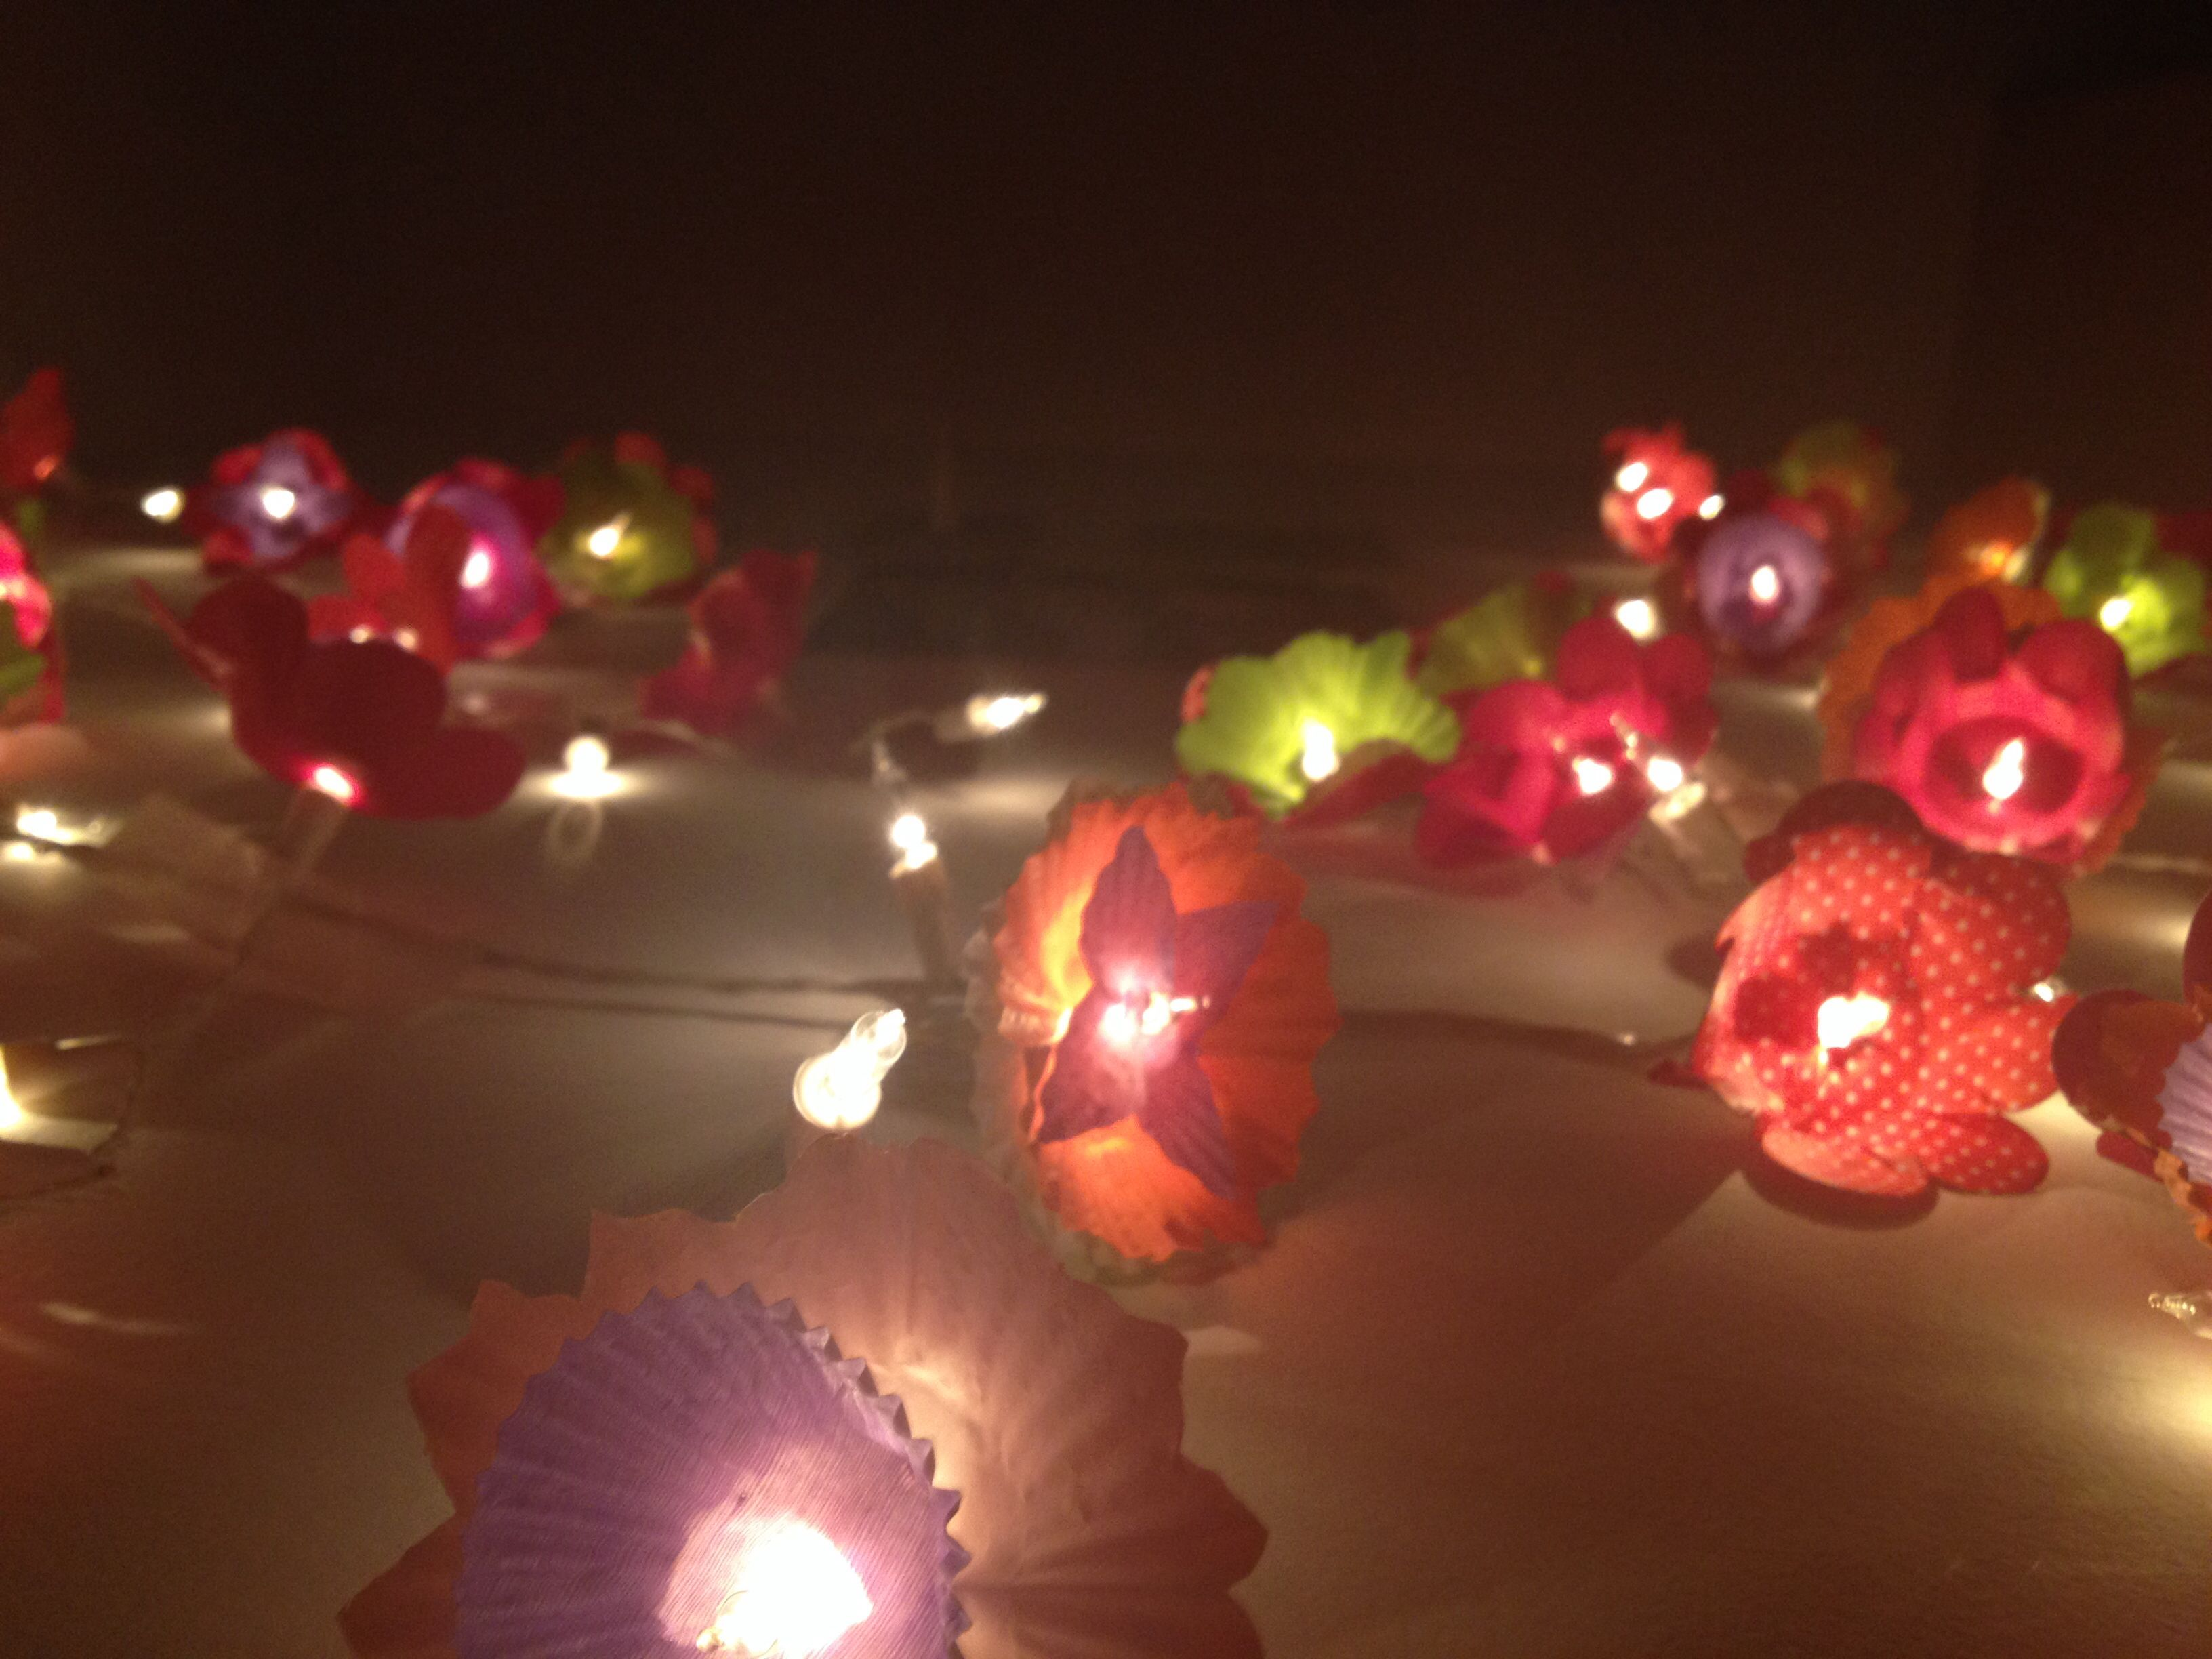 Diy flower string lights - Diy Flower String Lights Using Cupcake Paper And Xmas Light Easy And Super Cute